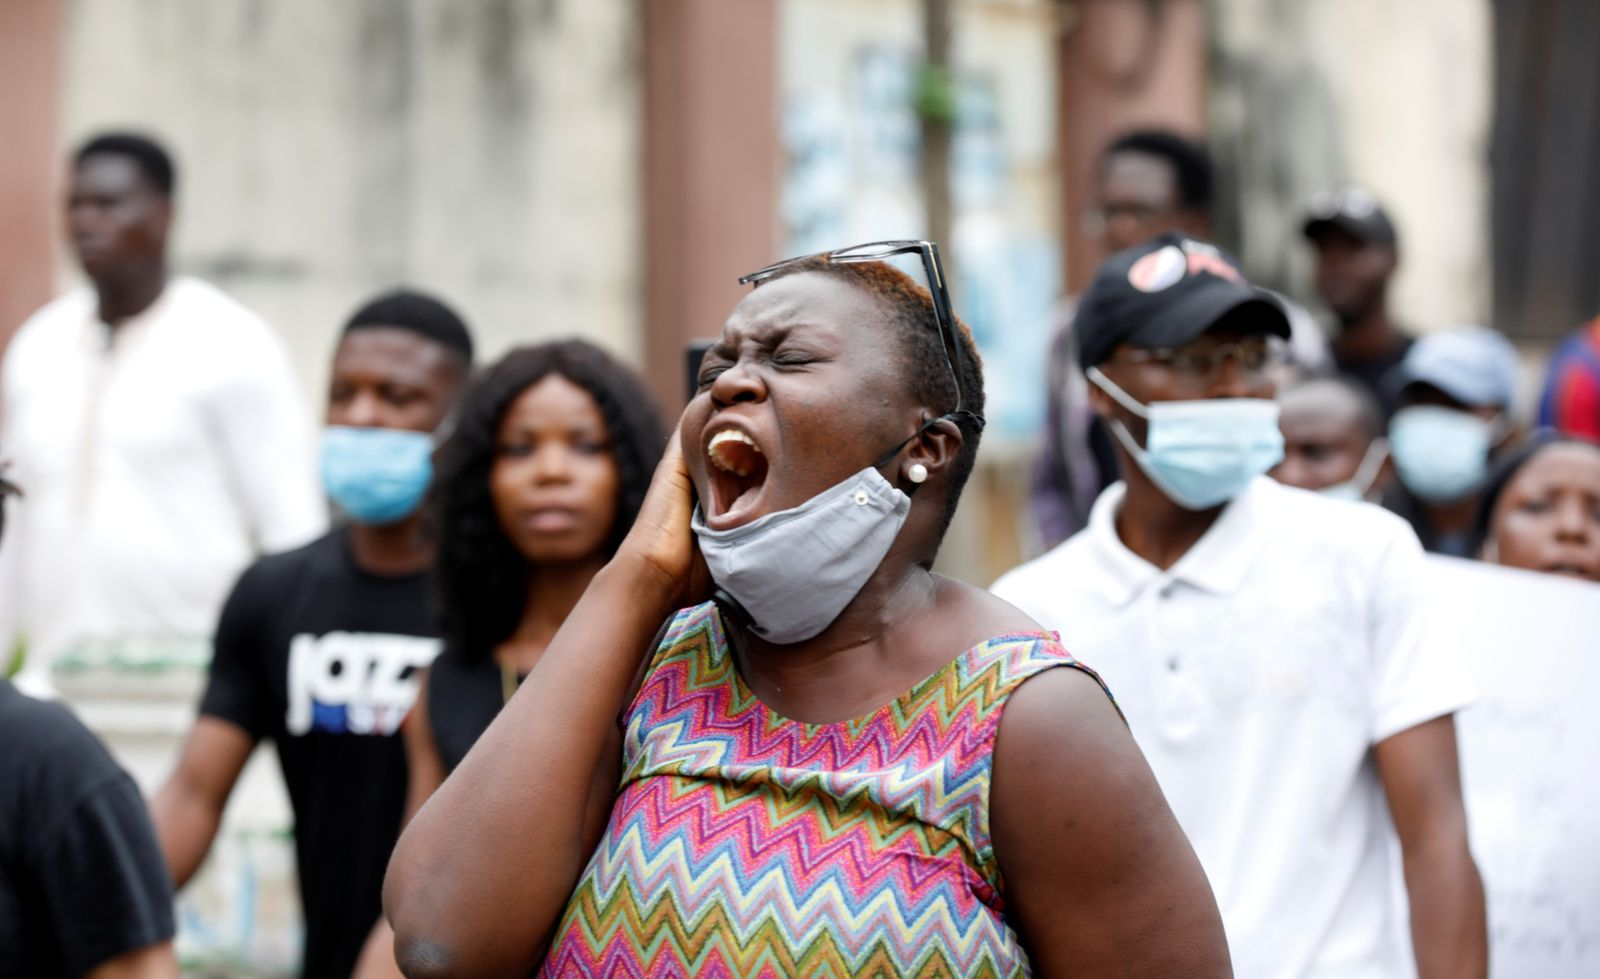 Nigerians take part in a protest against alleged violence, extortion and harassment from Nigeria's Special Anti-Robbery Squad (SARS), in Lagos